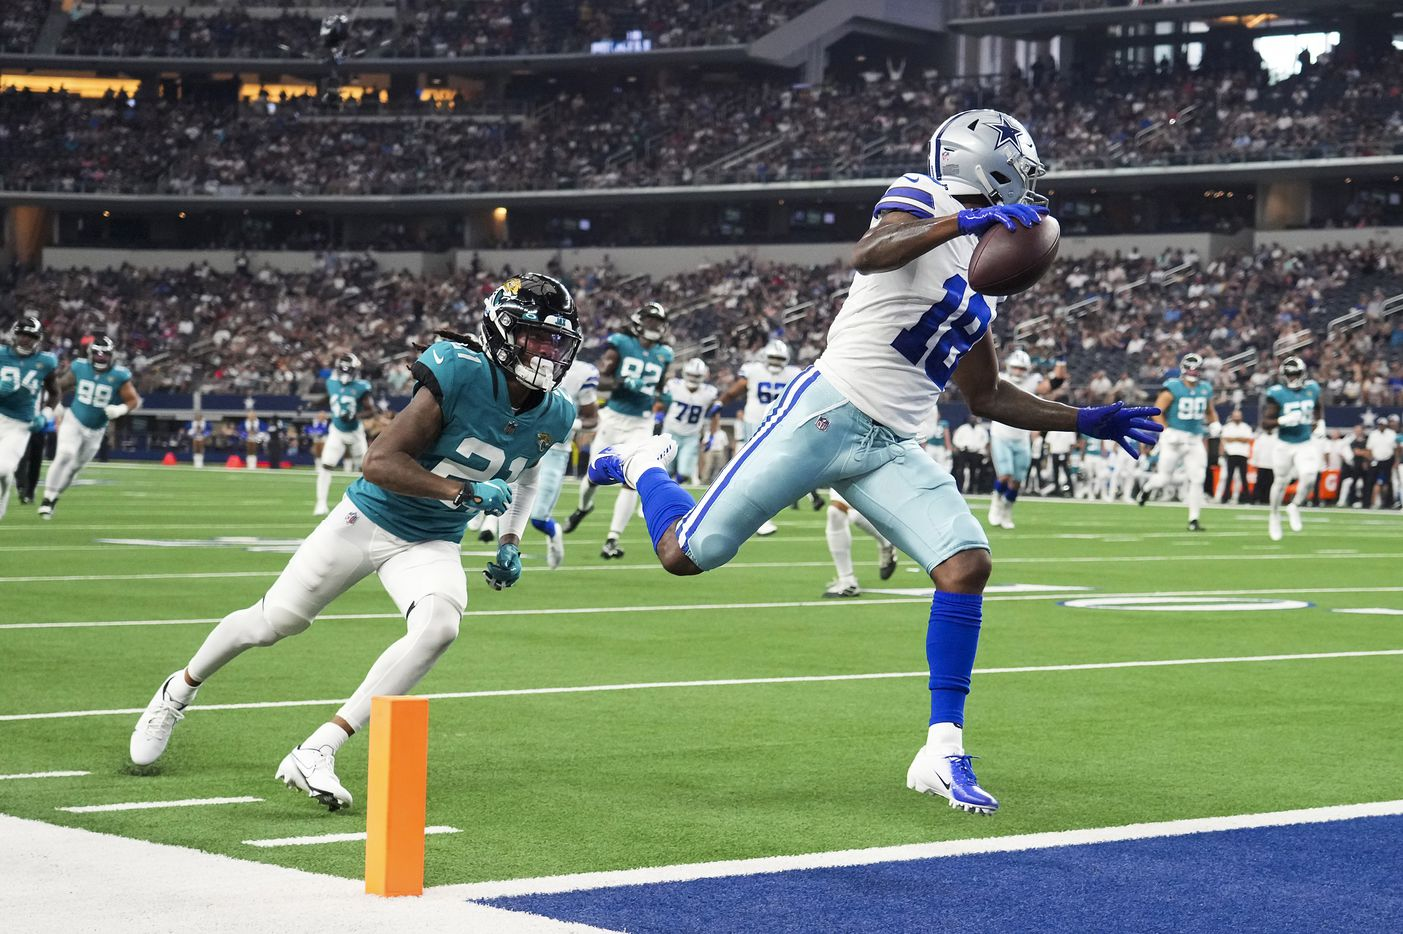 Dallas Cowboys wide receiver Aaron Parker (18) scores on a 19-yard touchdown  reception past Jacksonville Jaguars cornerback Sidney Jones (21) during the first half of a preseason NFL football game at AT&T Stadium on Sunday, Aug. 29, 2021, in Arlington. (Smiley N. Pool/The Dallas Morning News)